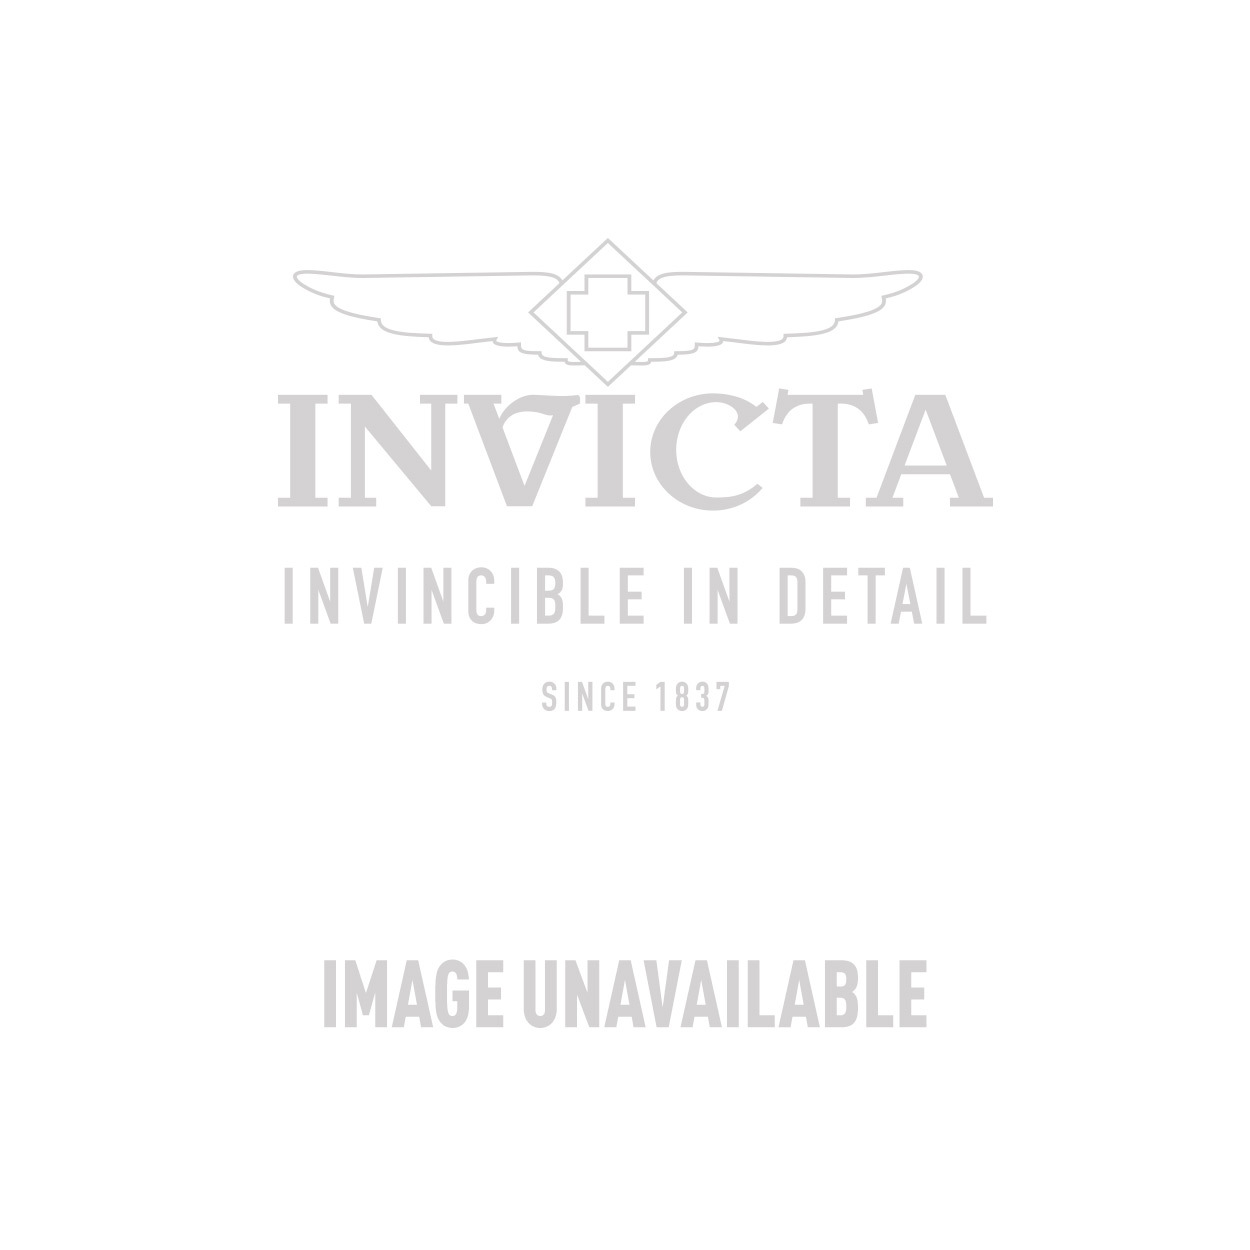 Invicta Specialty Swiss Movement Quartz Watch - Stainless Steel case Stainless Steel band - Model 18009